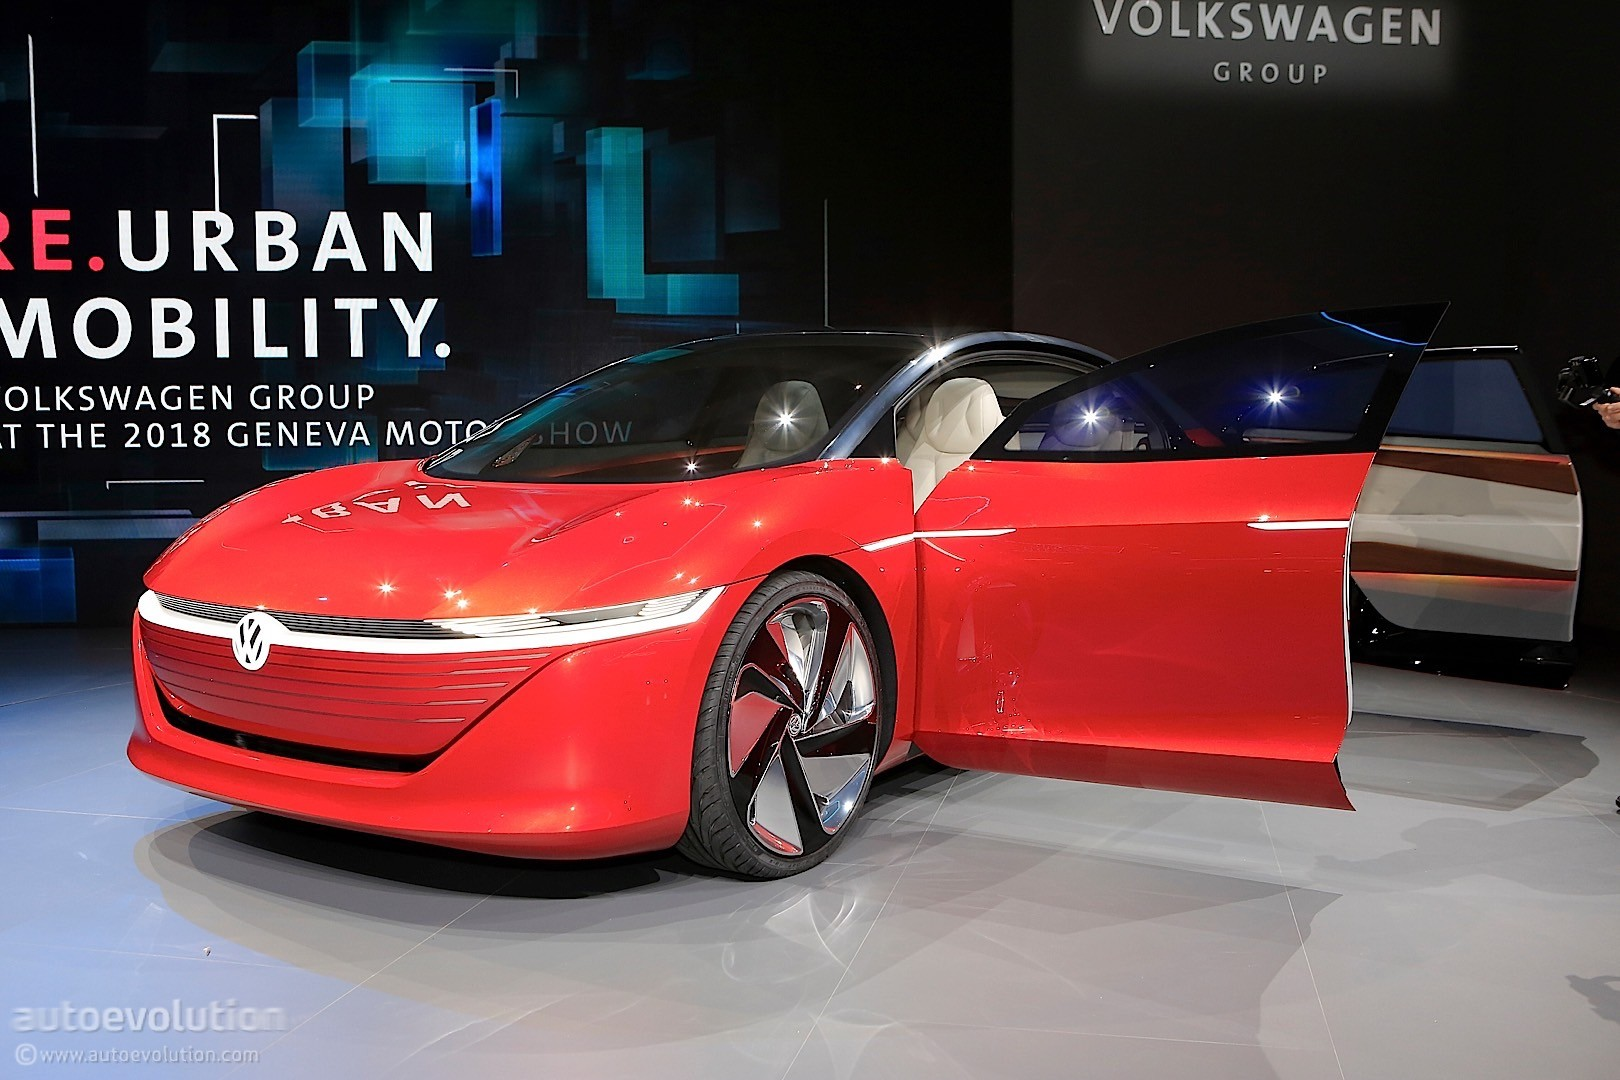 Volkswagen Announces Invasion of Electric Vehicles by 2022 - autoevolution